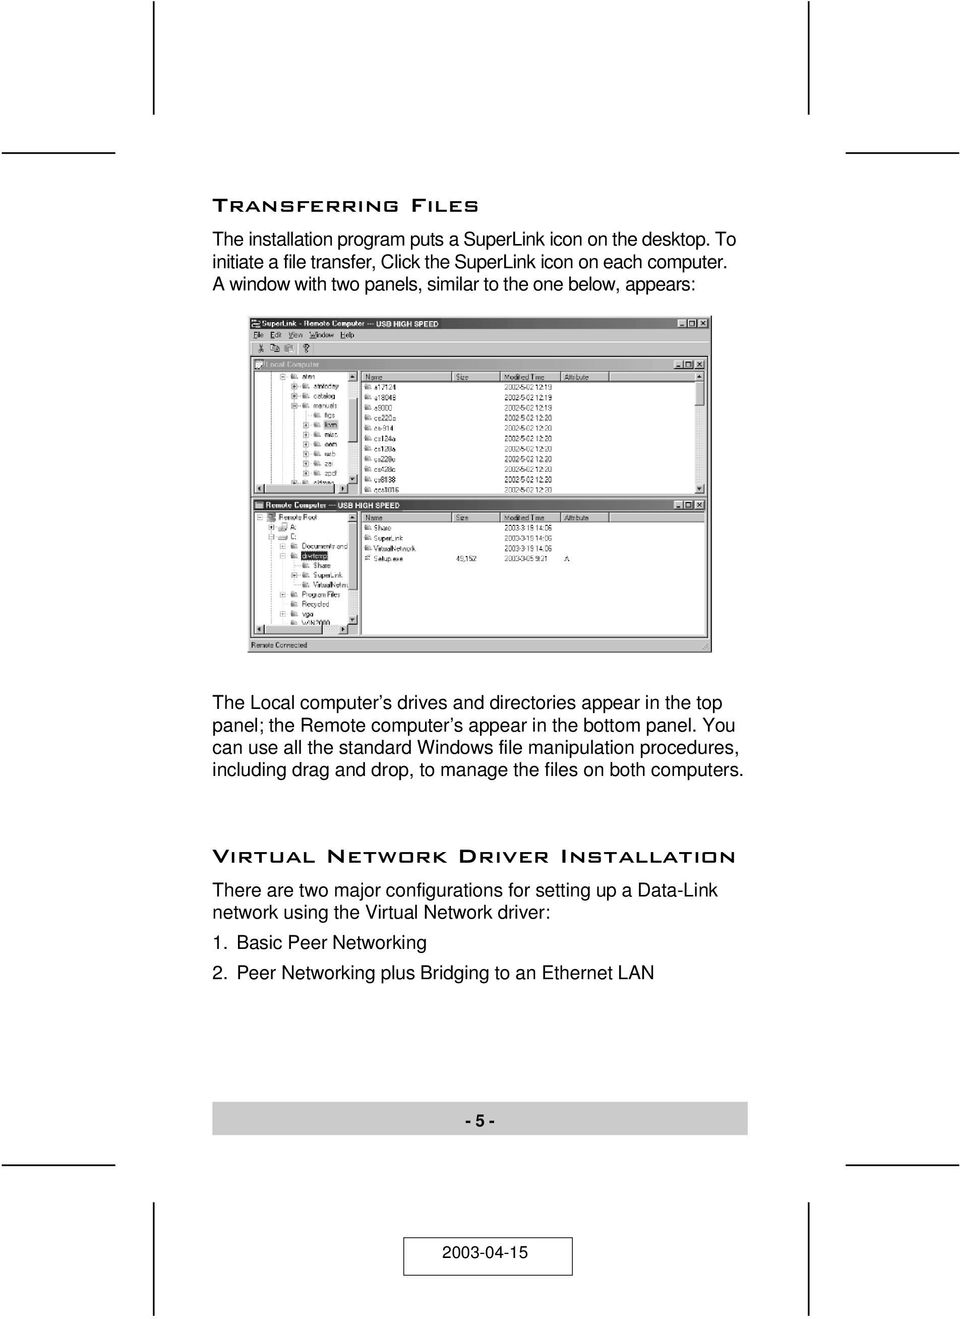 bottom panel. You can use all the standard Windows file manipulation procedures, including drag and drop, to manage the files on both computers.